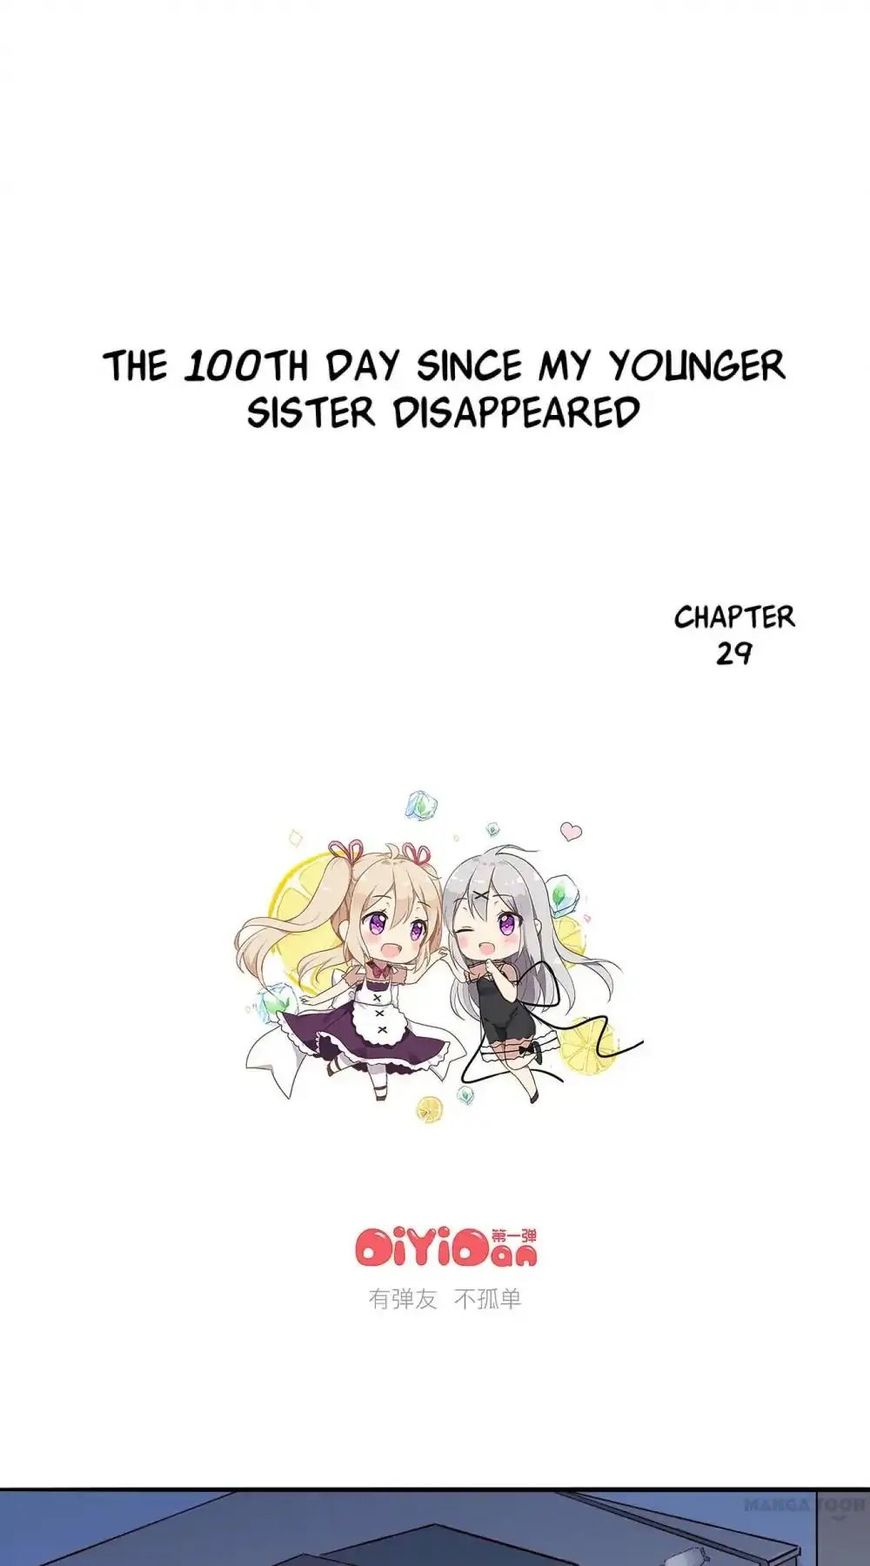 https://img2.nineanime.com/comics/pic1/36/22372/595336/Day100ofMySistersDisappear0378.jpg Page 1